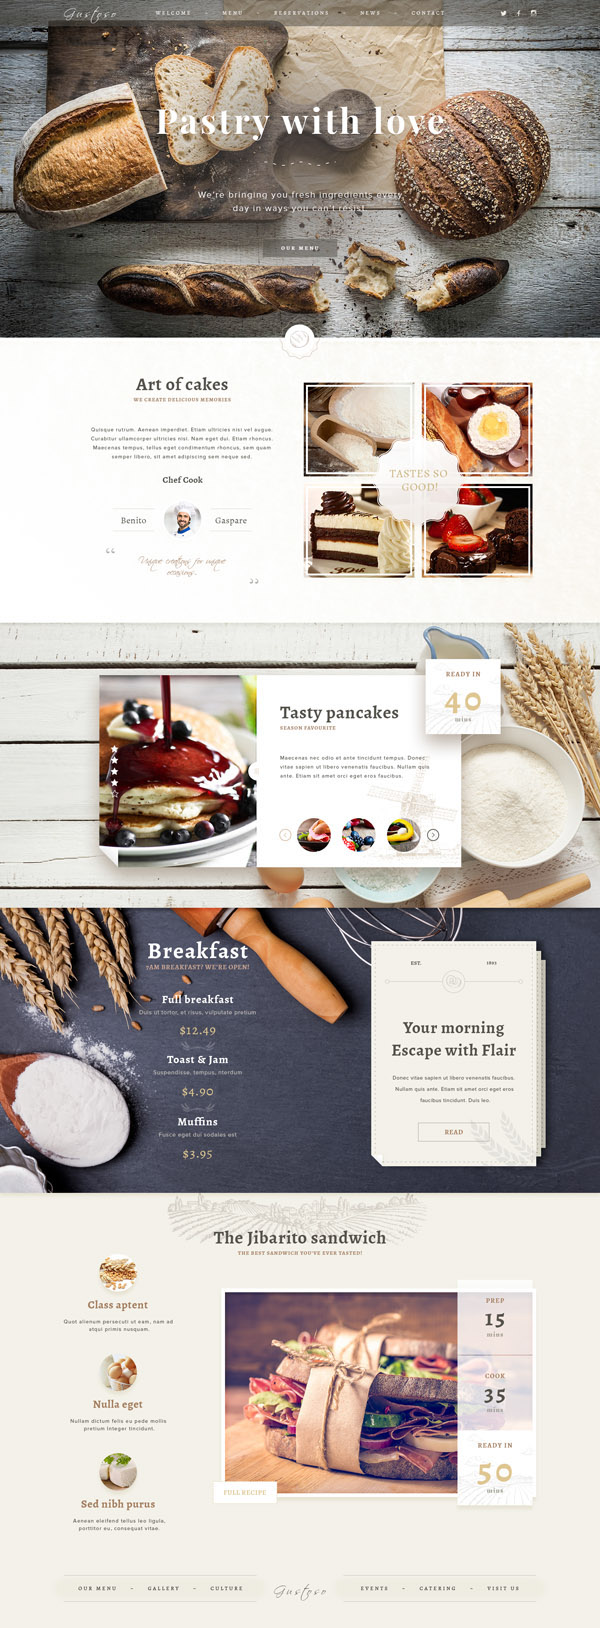 Free Bakery PSD Web Template 01